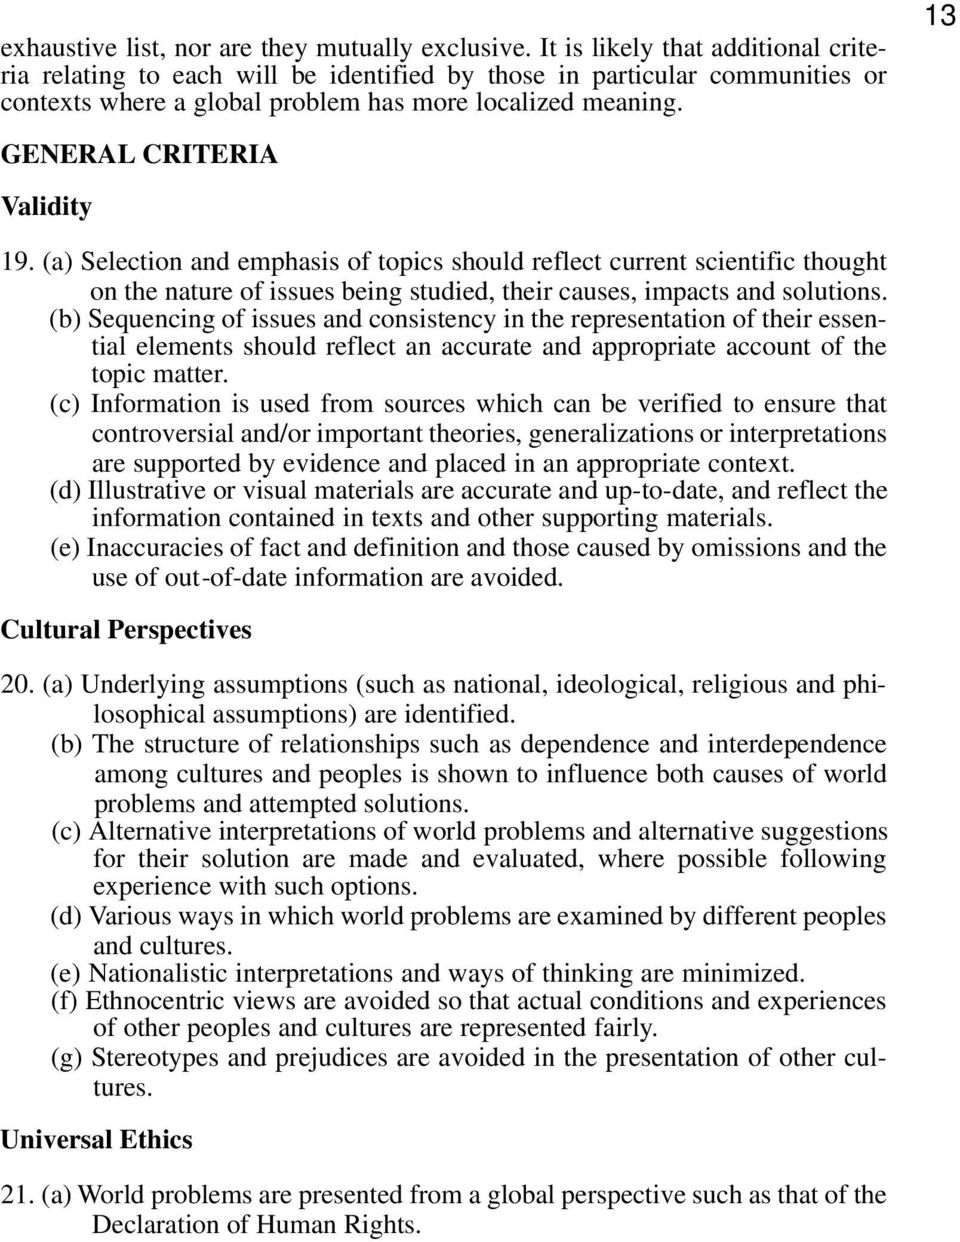 GENERAL CRITERIA Validity 13 19. (a) Selection and emphasis of topics should reflect current scientific thought on the nature of issues being studied, their causes, impacts and solutions.